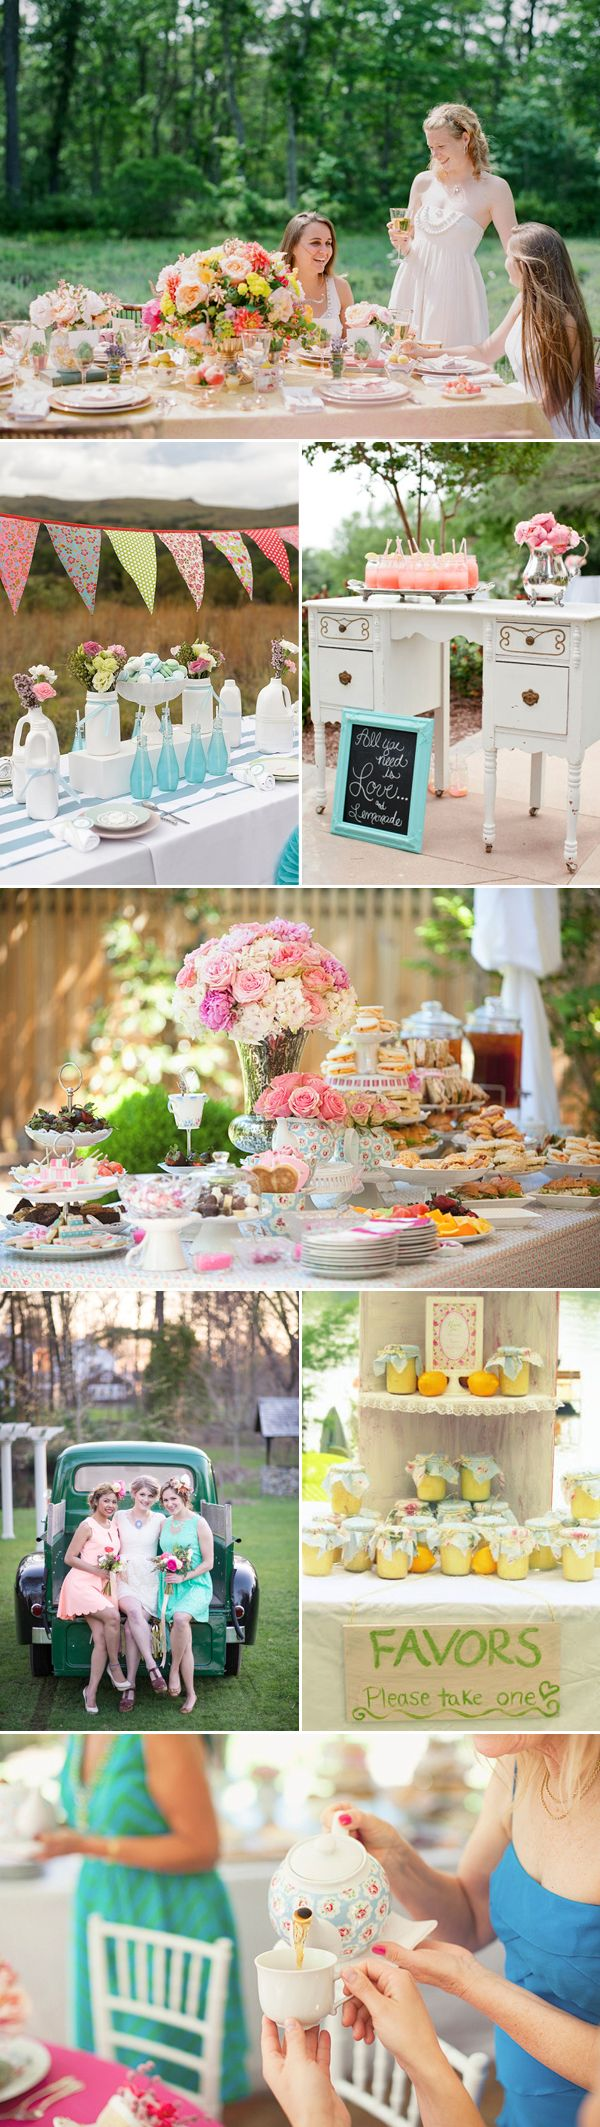 Tea Party Bridal Shower — Praise Wedding... totally could do for baby shower or lil girl bday party (for the future)